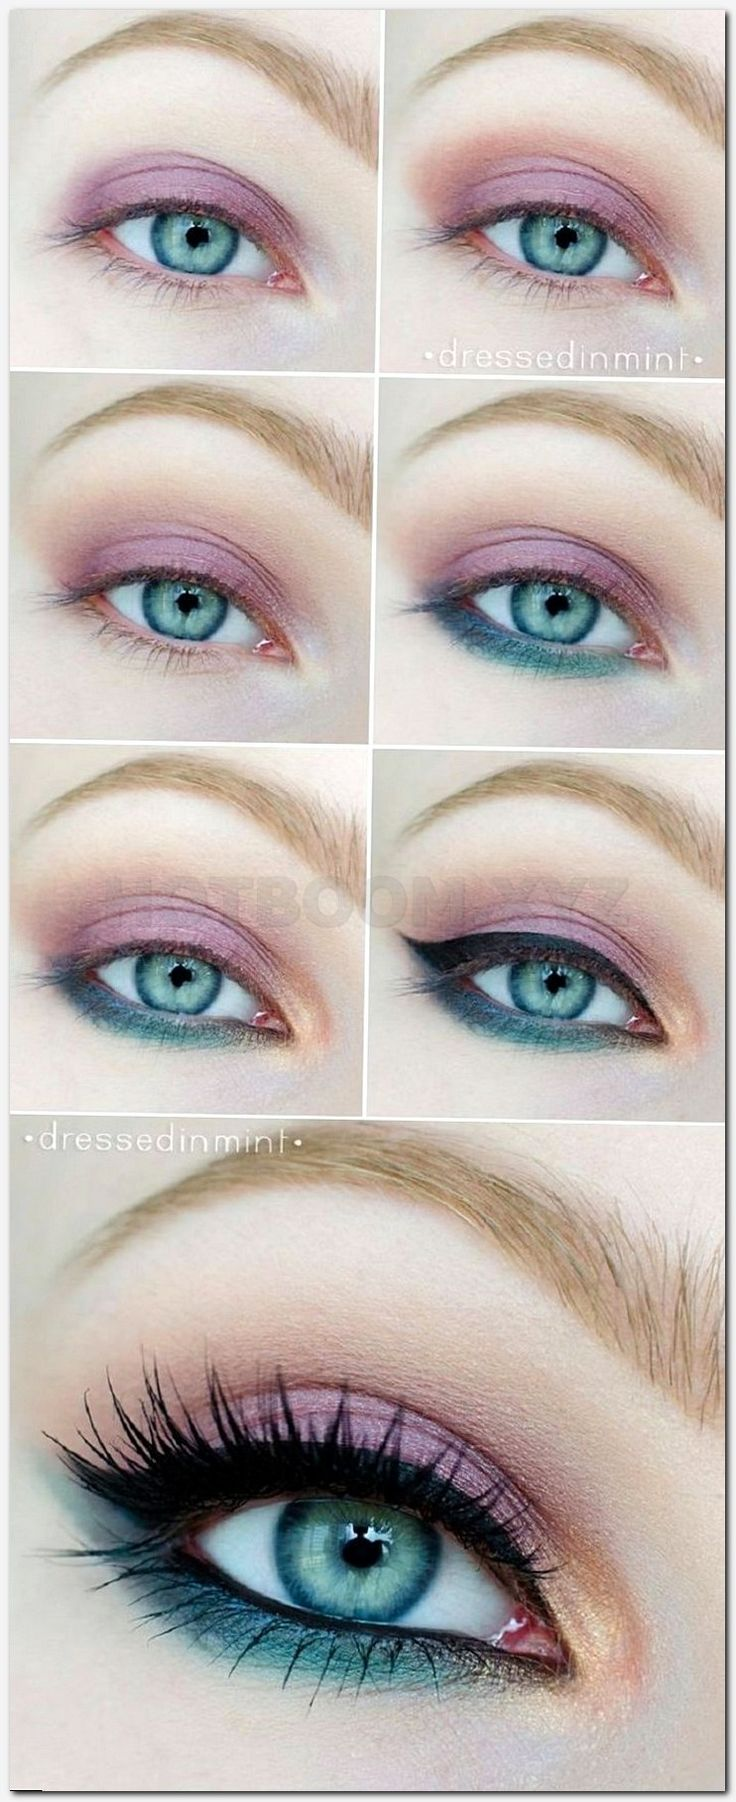 what's makeup made of, asian eye colour, my makeup ng, make up for black girls, how to get simple makeup, how to everyday makeup, dulhan makeup 2017, beauty industry, future makeup trends, natural home beauty tips, make up store dusseldorf, beauty supply hair store near me, beautiful wedding hairstyles for long hair, makeup for everyday look, best makeup celebrity, makeup application appointment